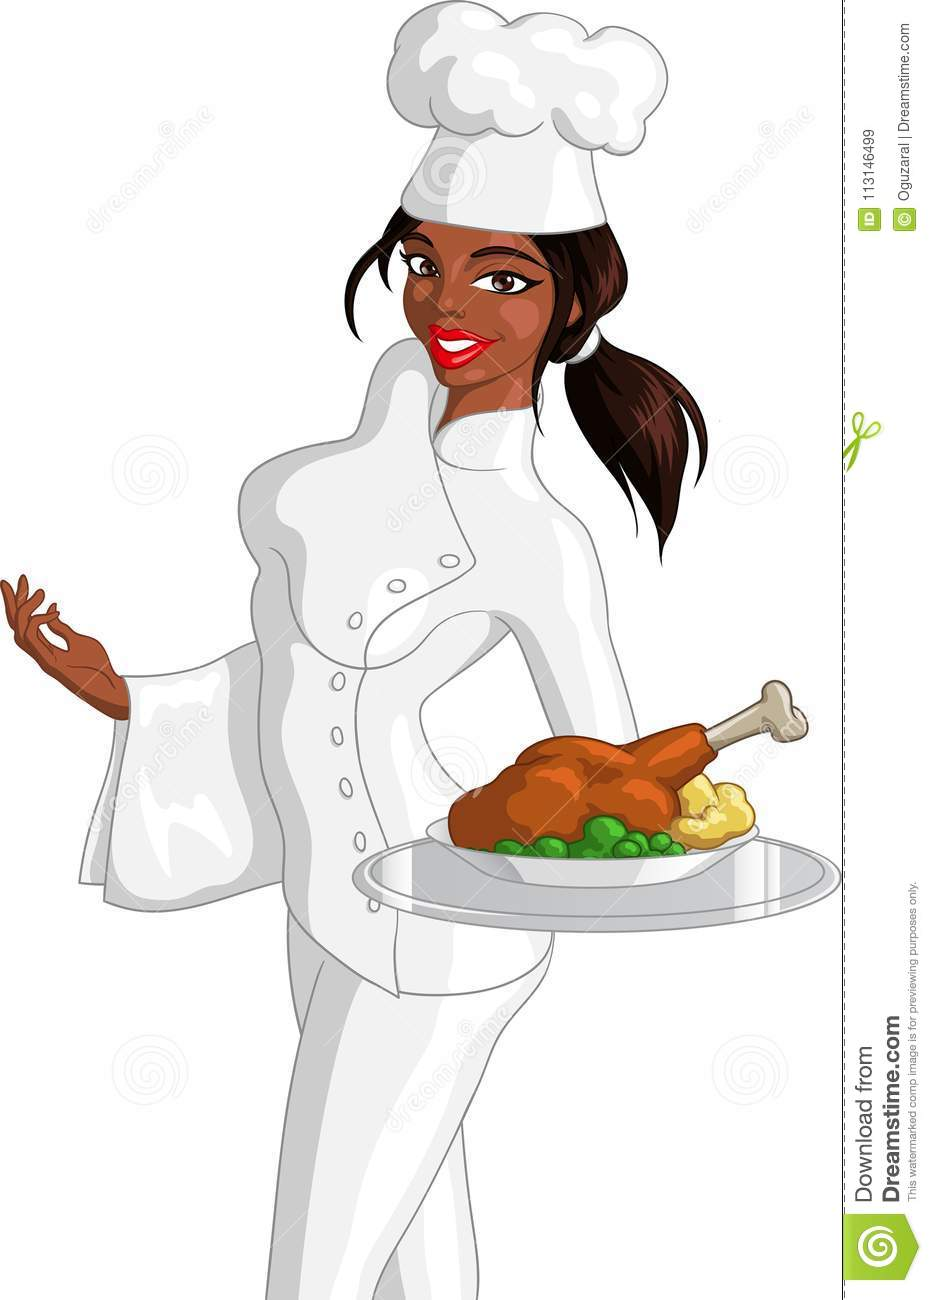 Female Black Chef Holding Fried Chicken Stock Vector ...